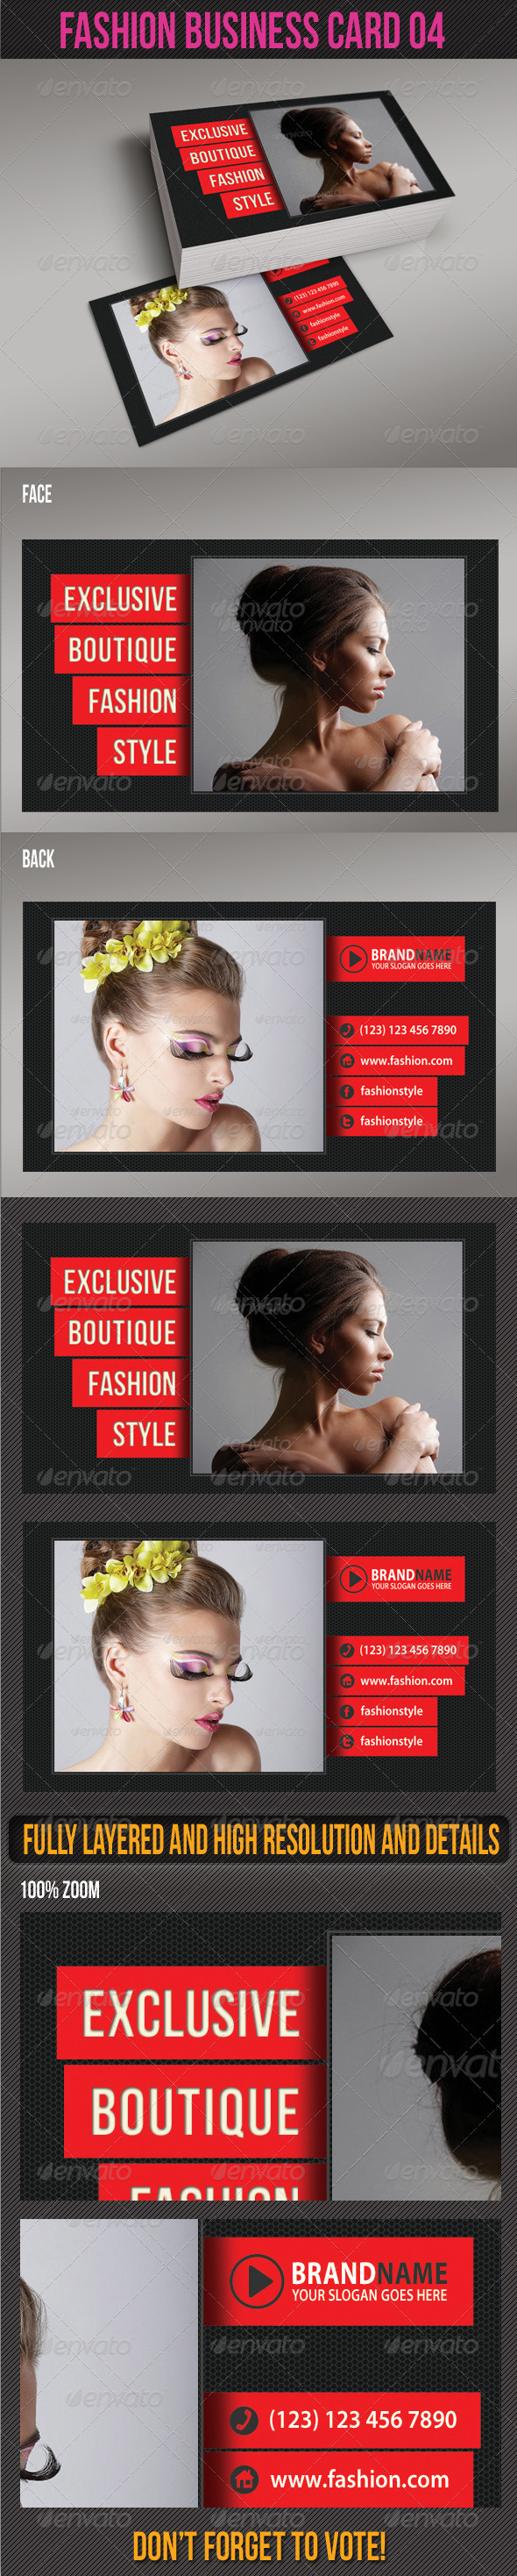 Fashion Business Card 04 - Creative Business Cards